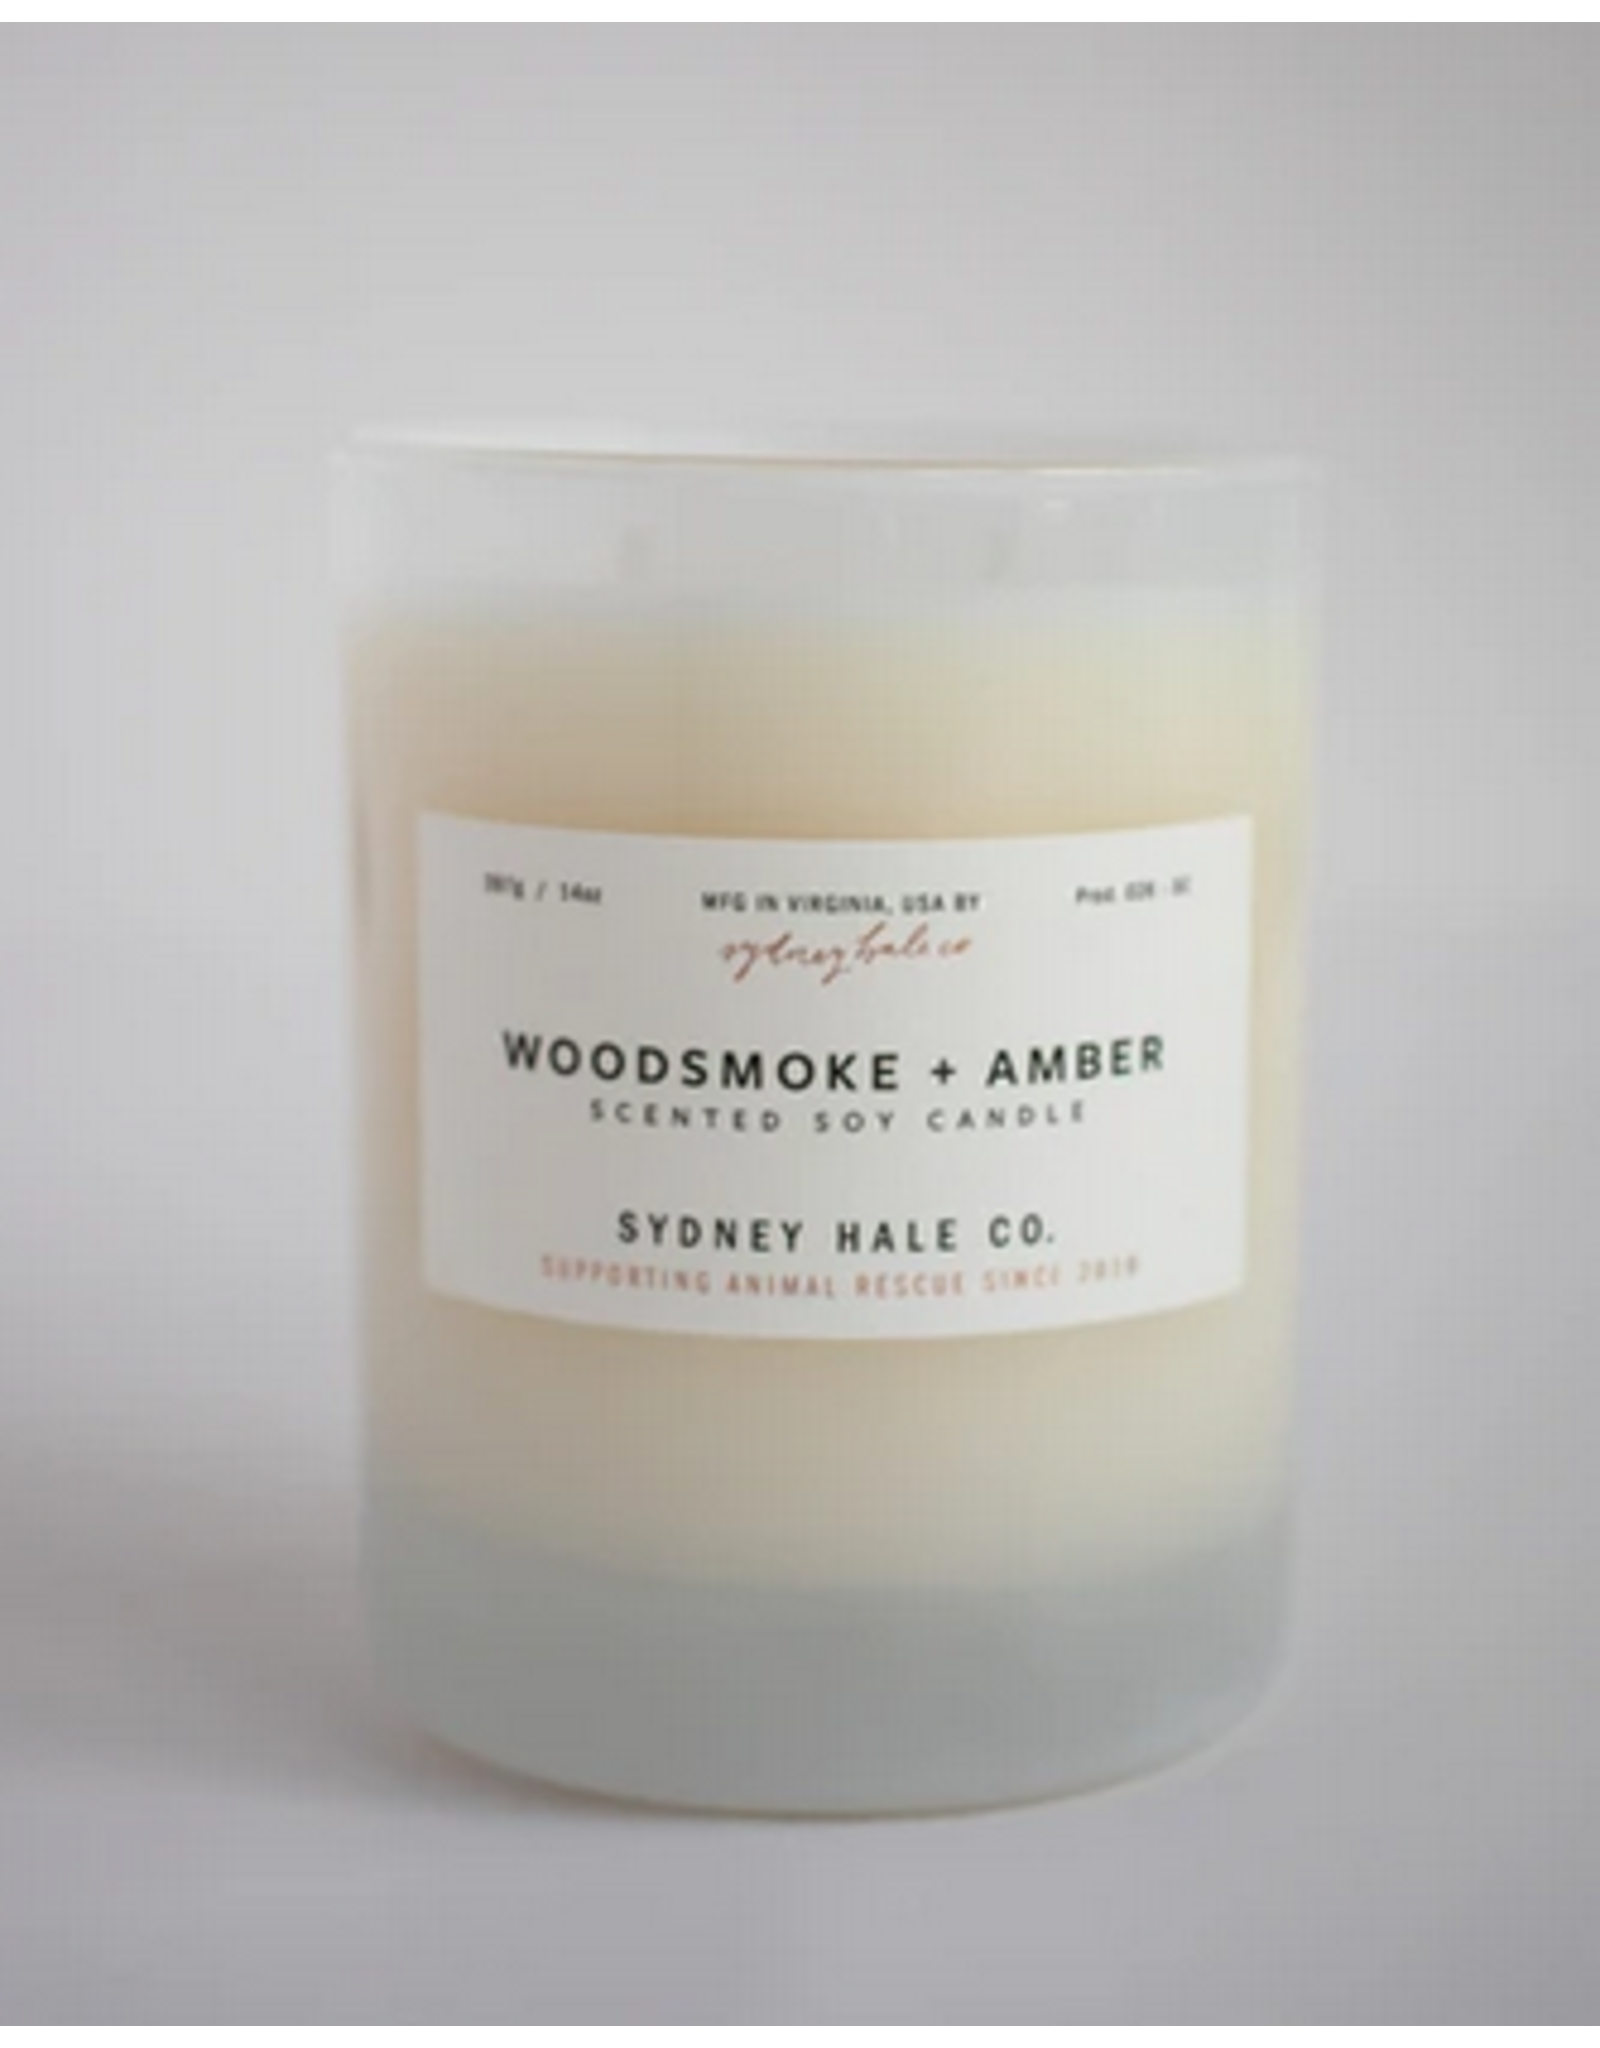 Sydney Hale Co. Clear Glass - Woodsmoke & Amber